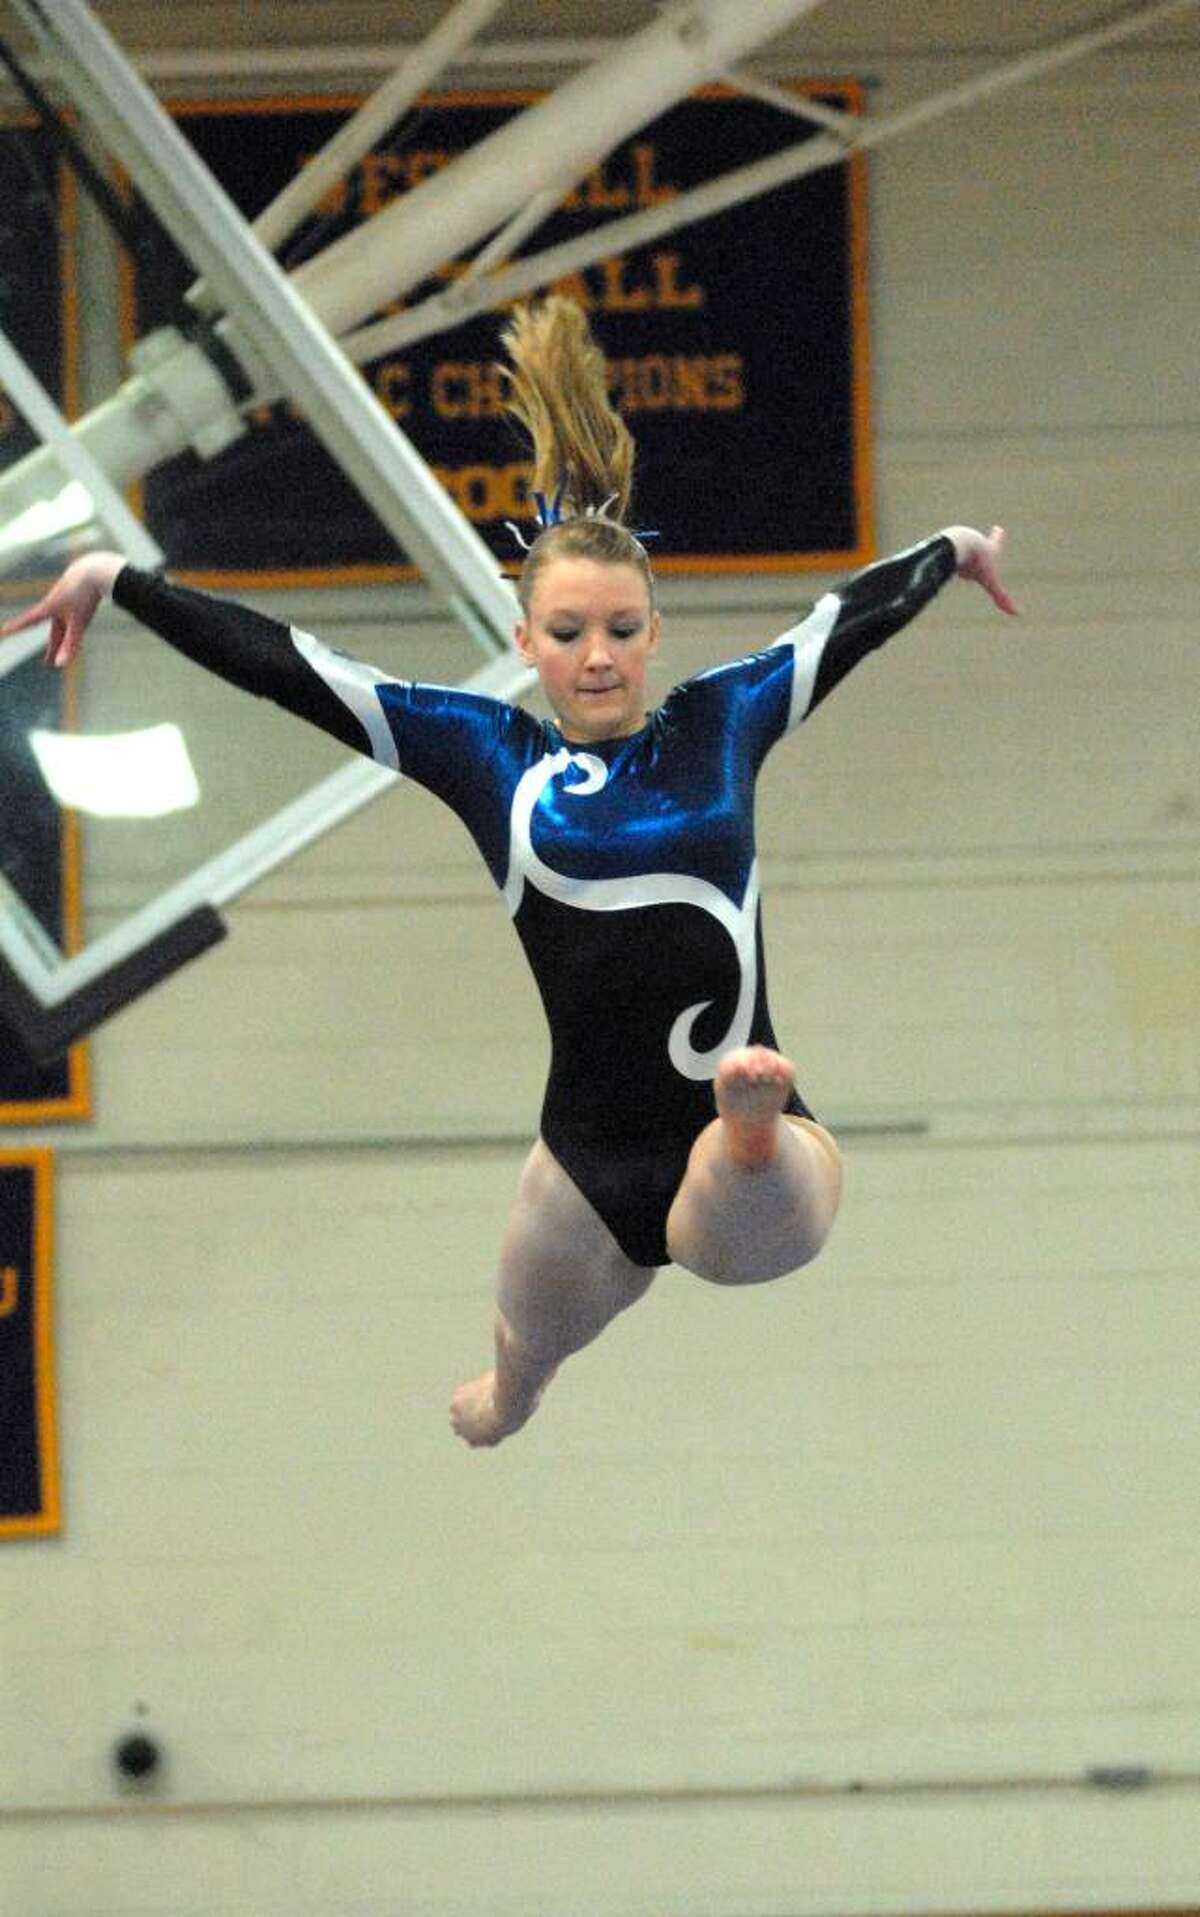 Charlotte Morgan from Darien High School competes at the FCIAC Gymnastics Championships at Westhill High School on Friday February 12, 2010.